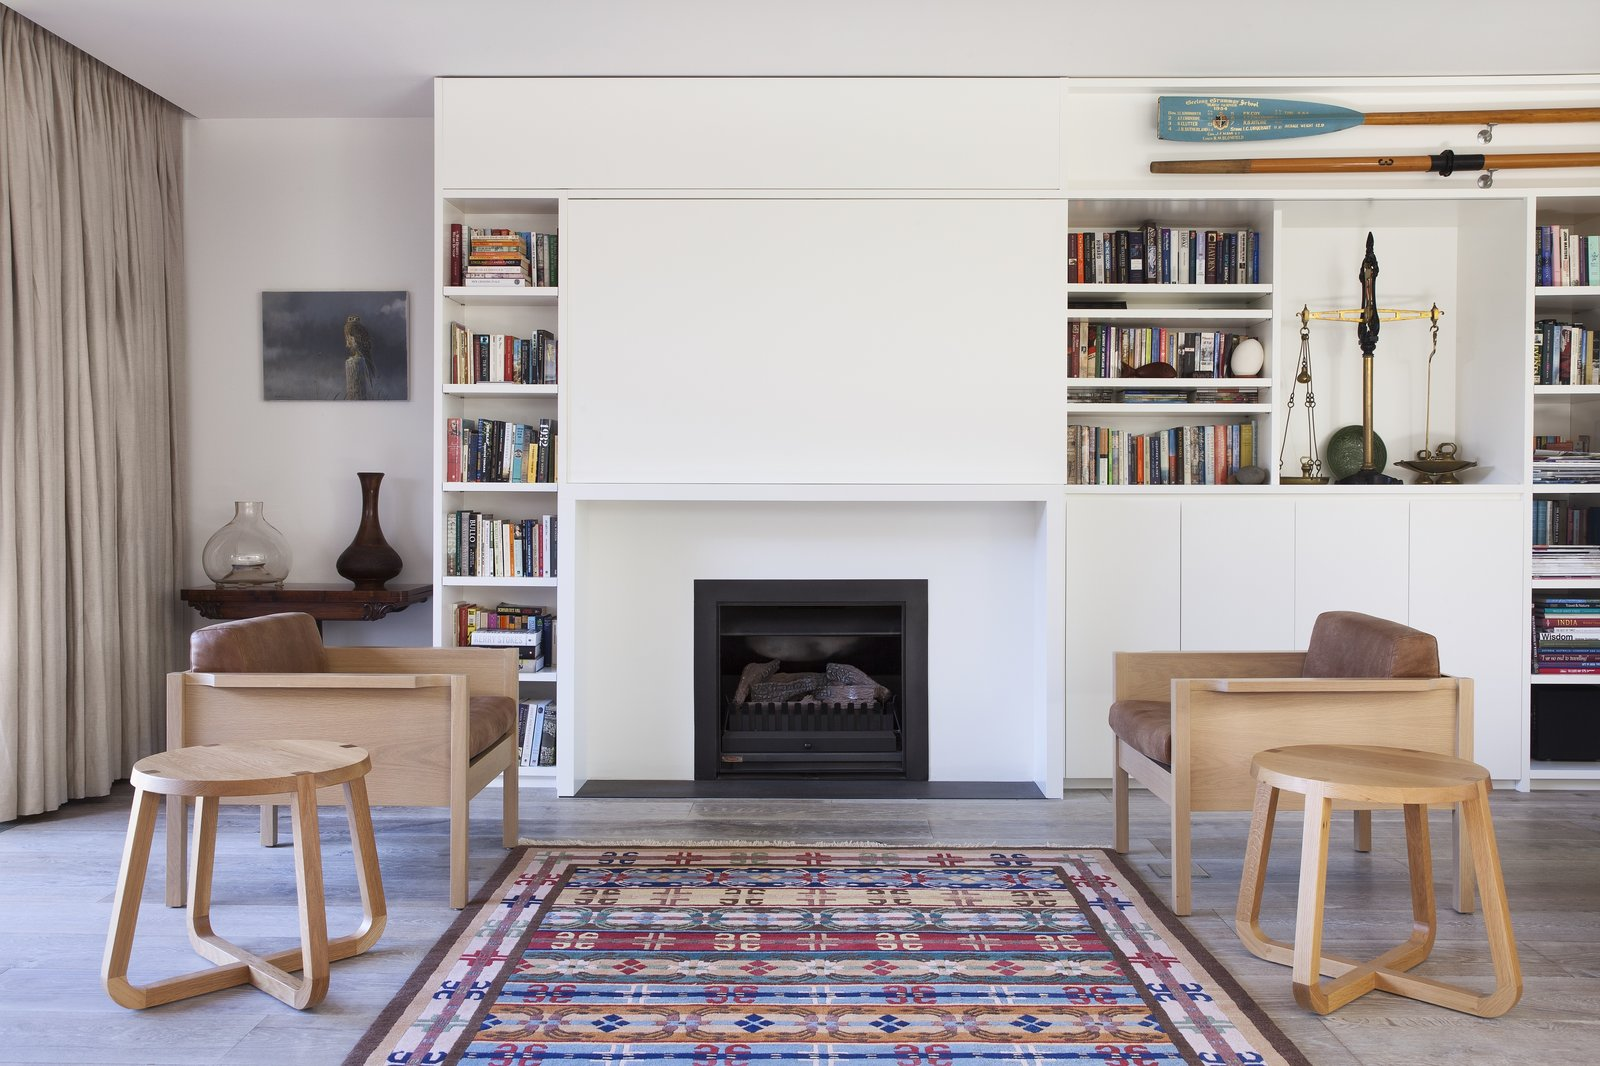 Living Room, Standard Layout Fireplace, Chair, End Tables, Bookcase, and Light Hardwood Floor  Photo 5 of 6 in A Timber-Clad Home in Australia Is a Striking Place to Grow Old In